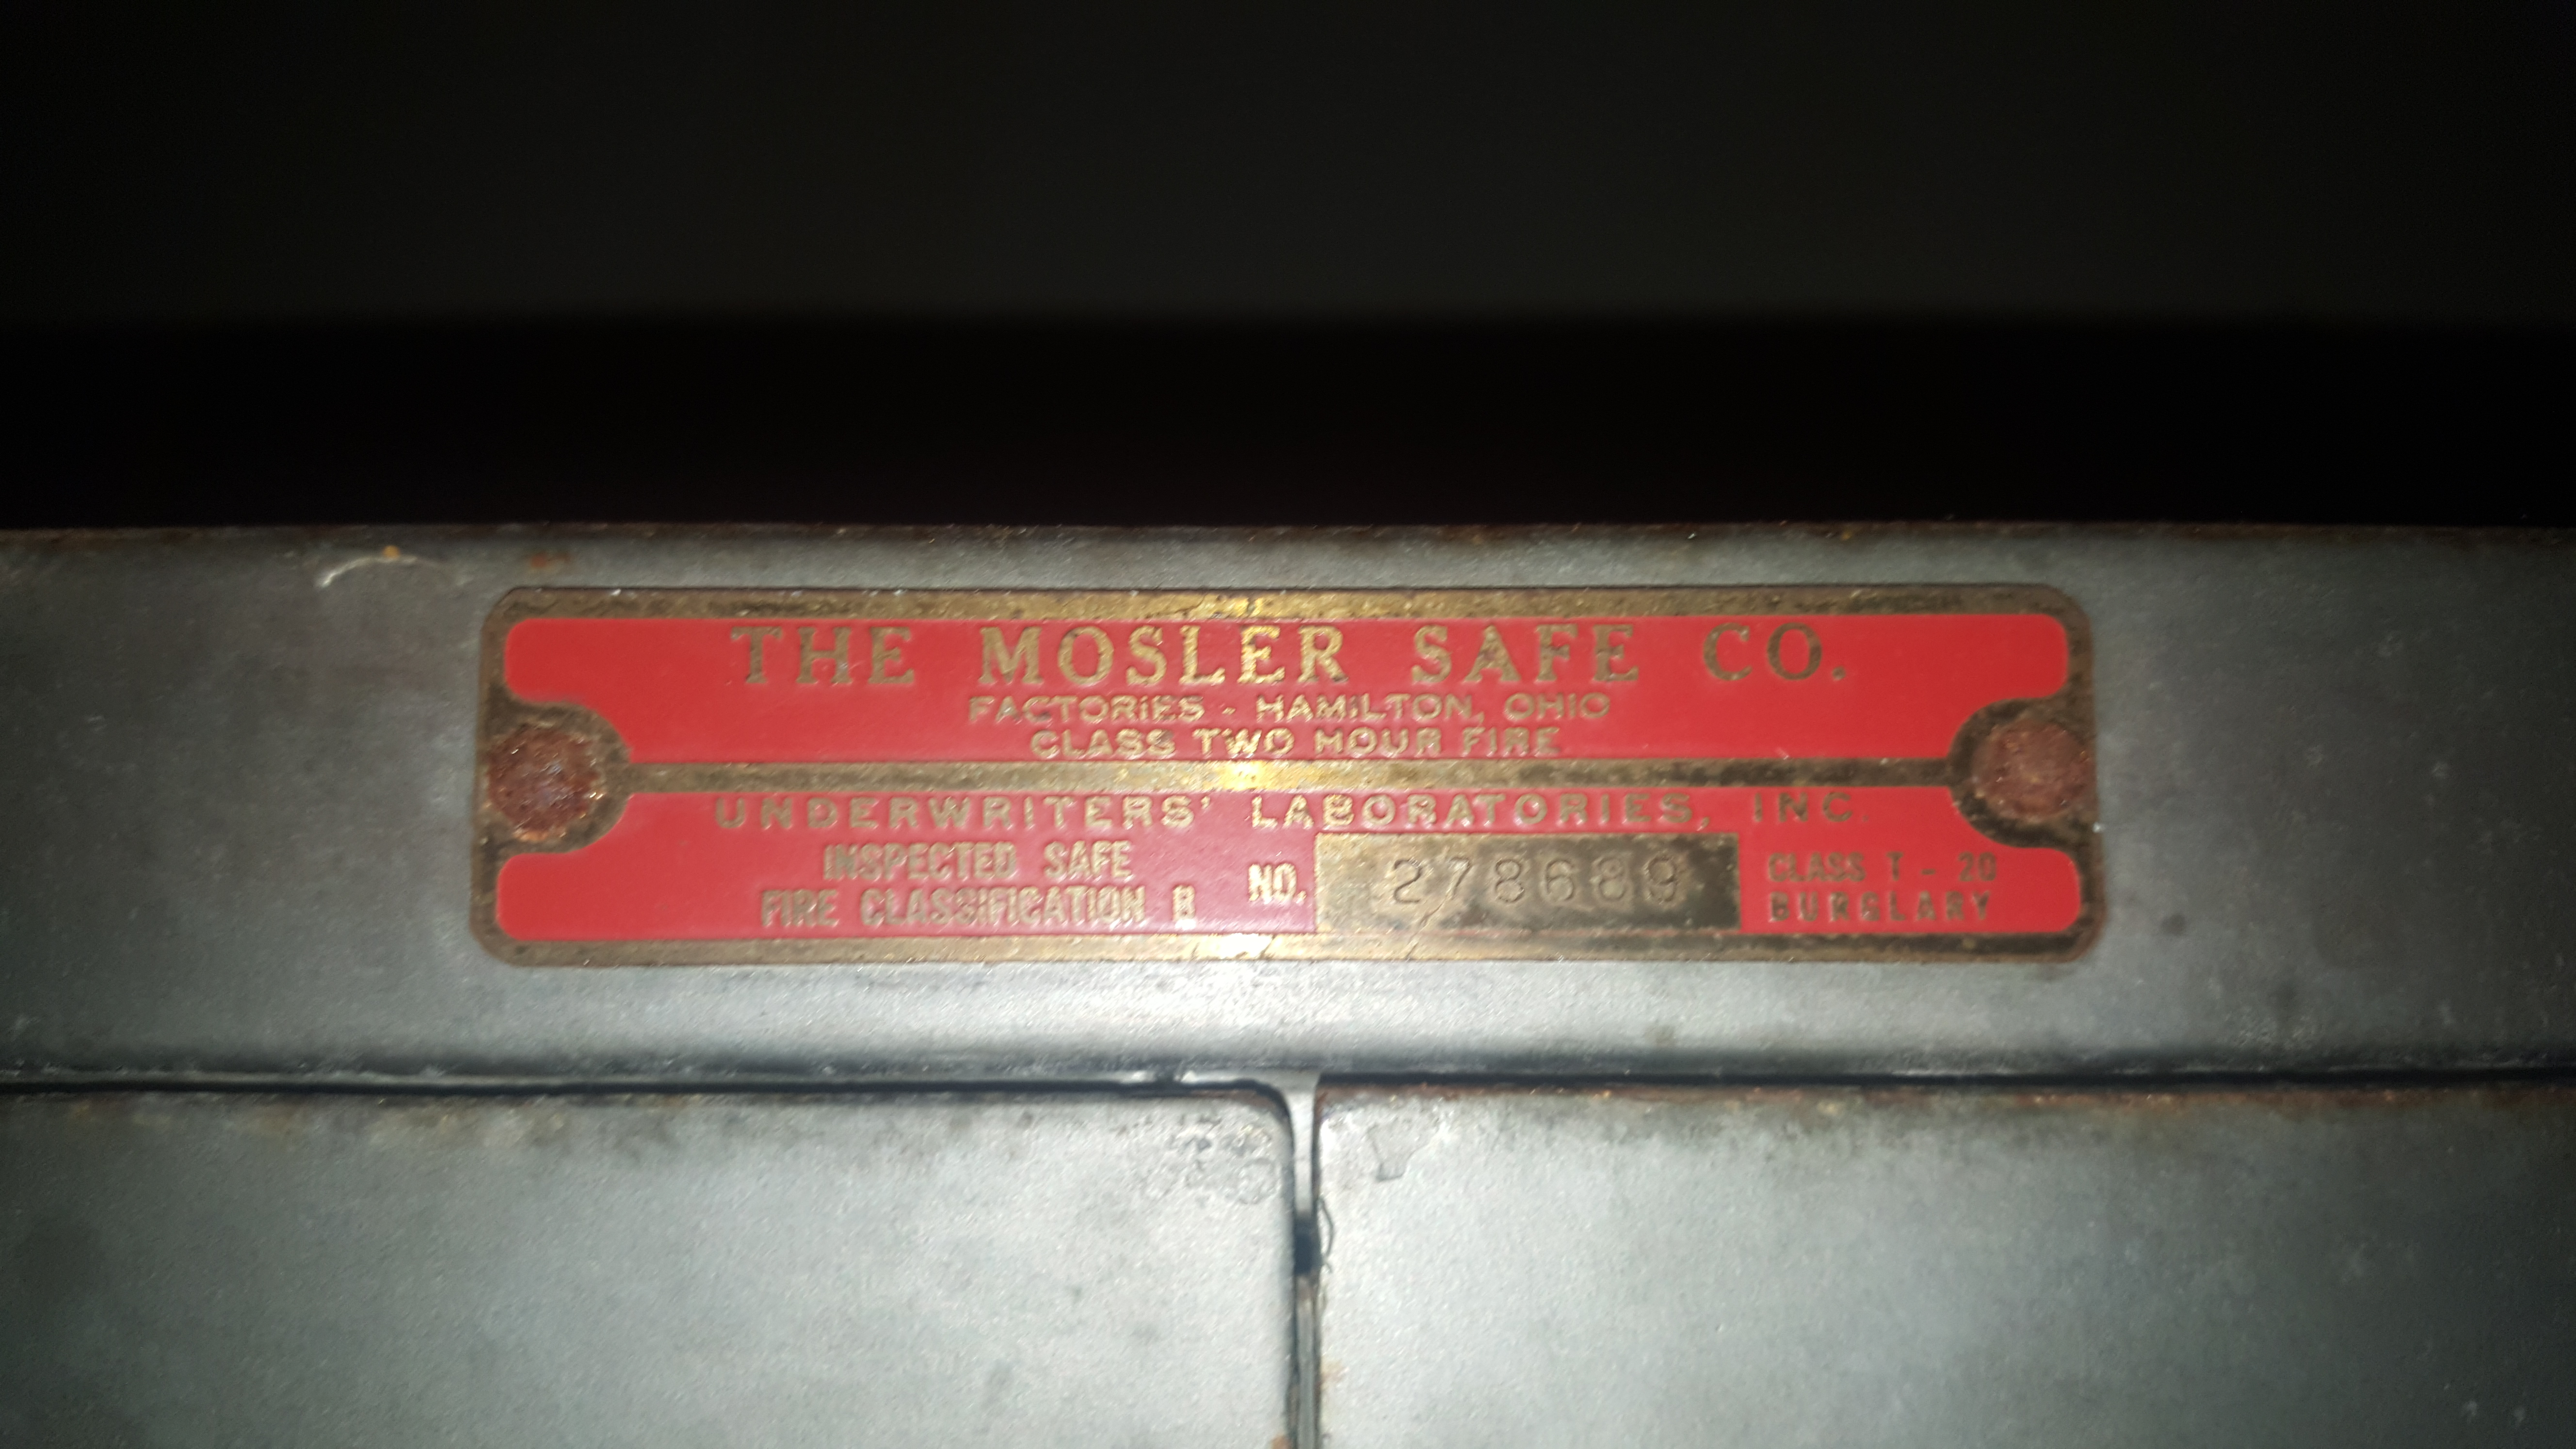 Got a MOSLER SAFE VERY OLD Underwriters listed T-20 CLASS